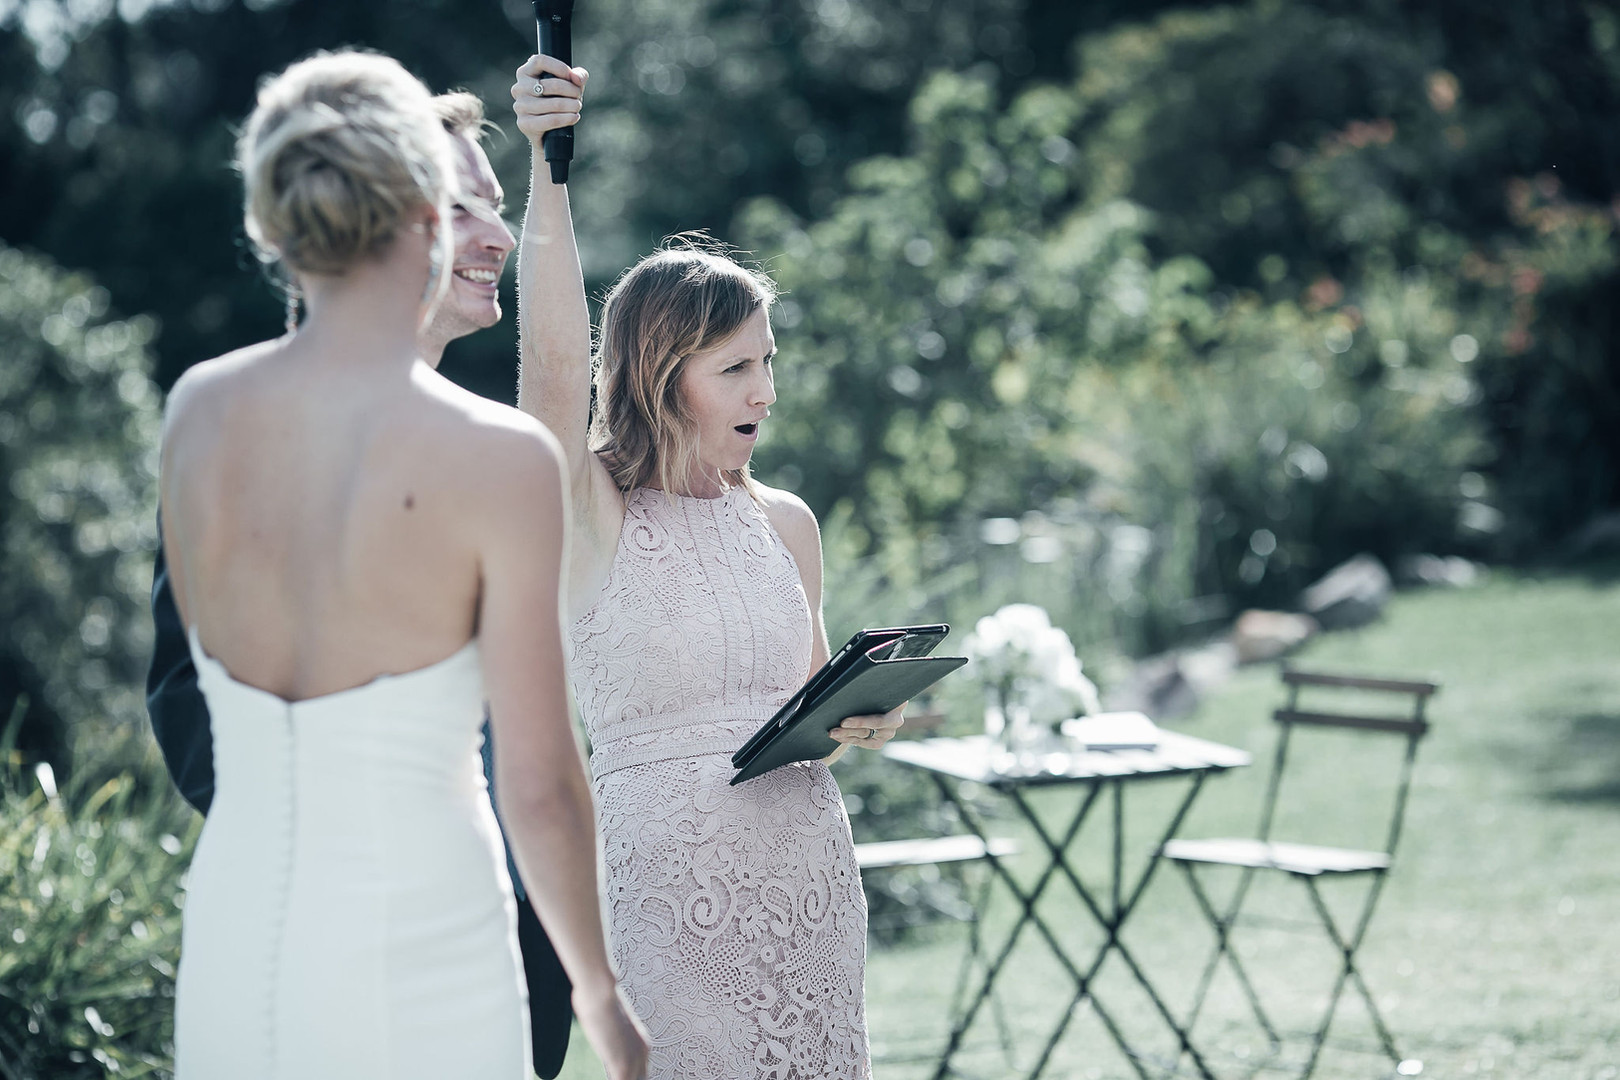 Caringbah Marriage Celebrant